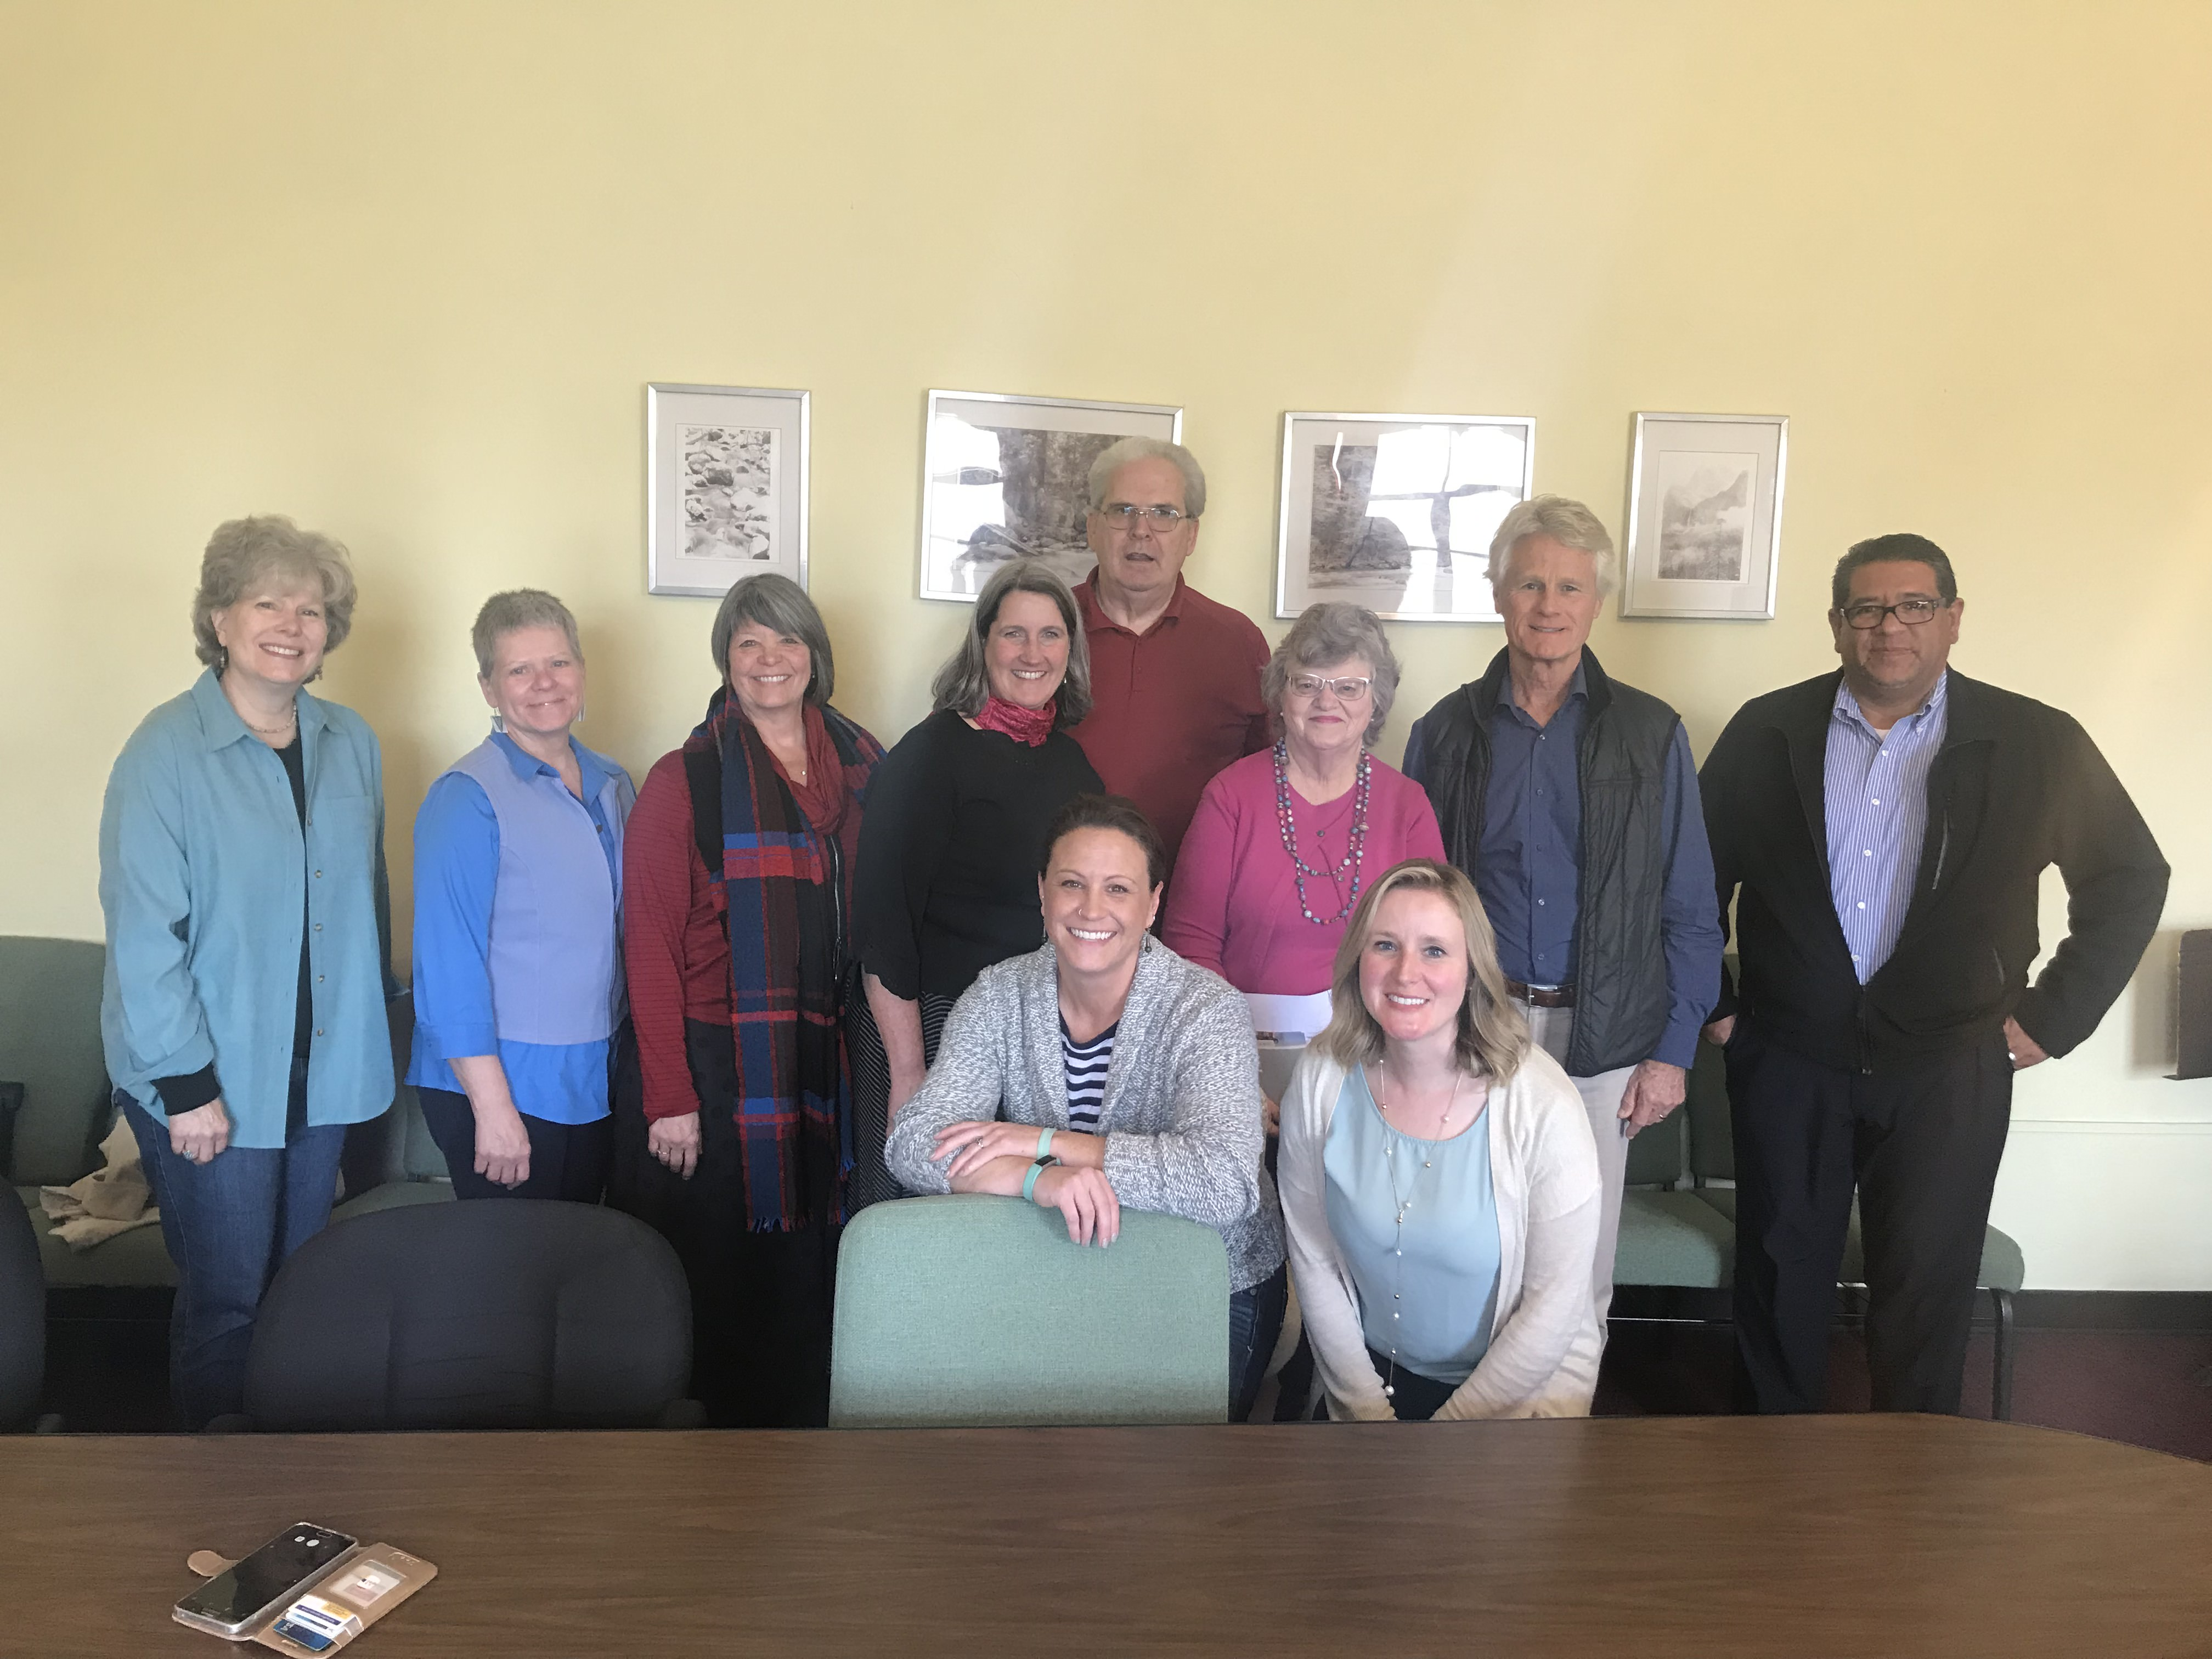 Susan Krehbiel and Laurie Kraus with Presbytery of San Diego and Presbytery of Pacific as they visit with the Director of Safe Harbors, the Rev. Bill Jenkins